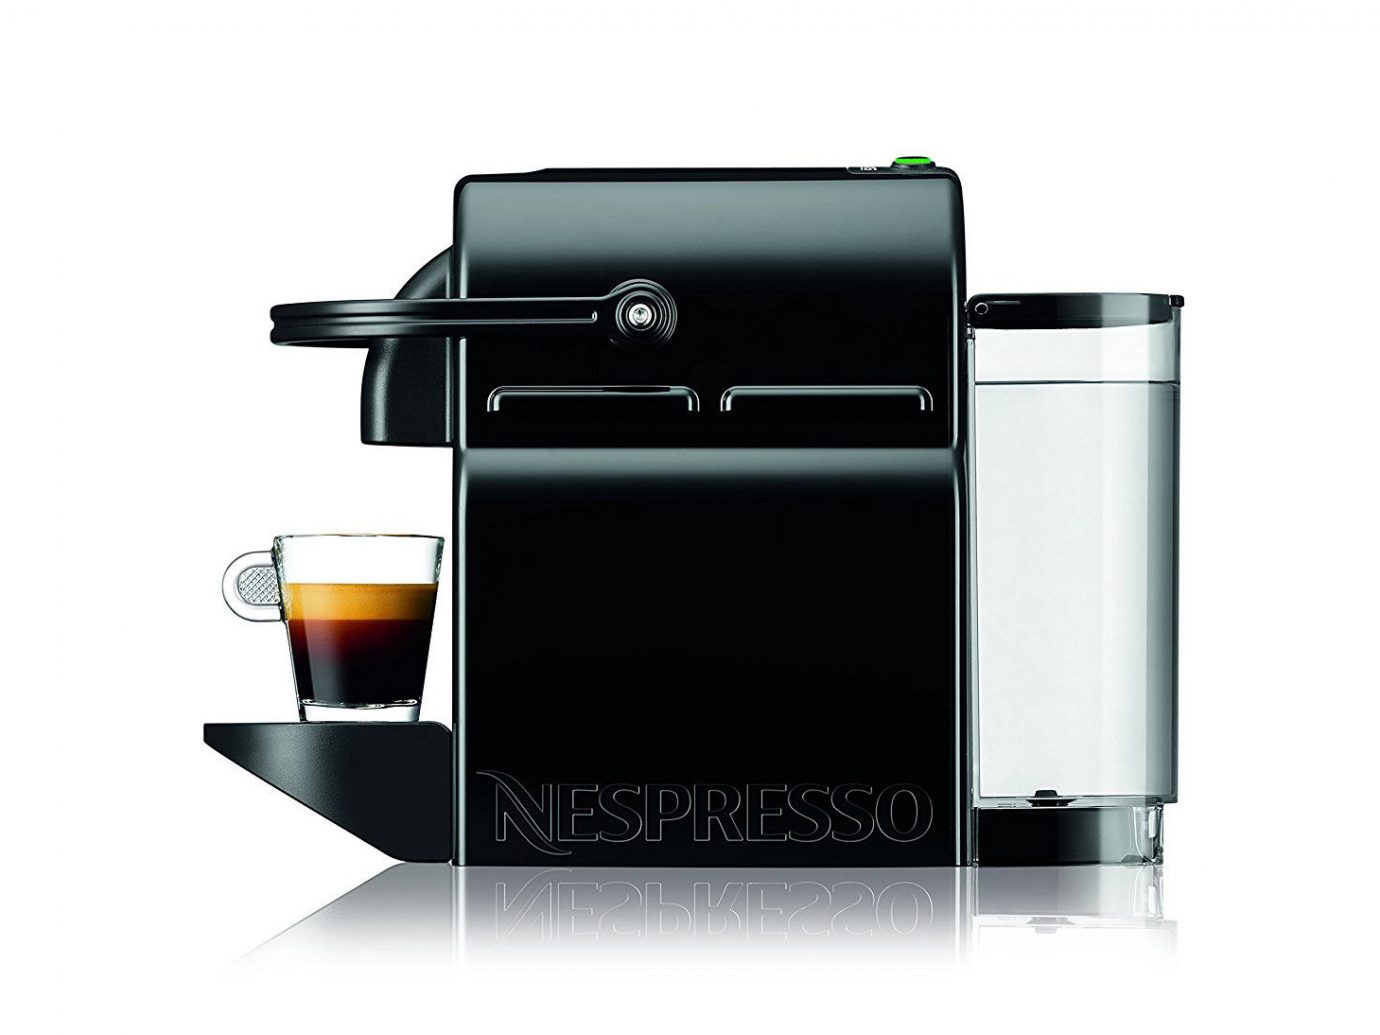 Gift Guides Travel Shop small appliance espresso machine coffeemaker kitchen appliance product design home appliance product food processor